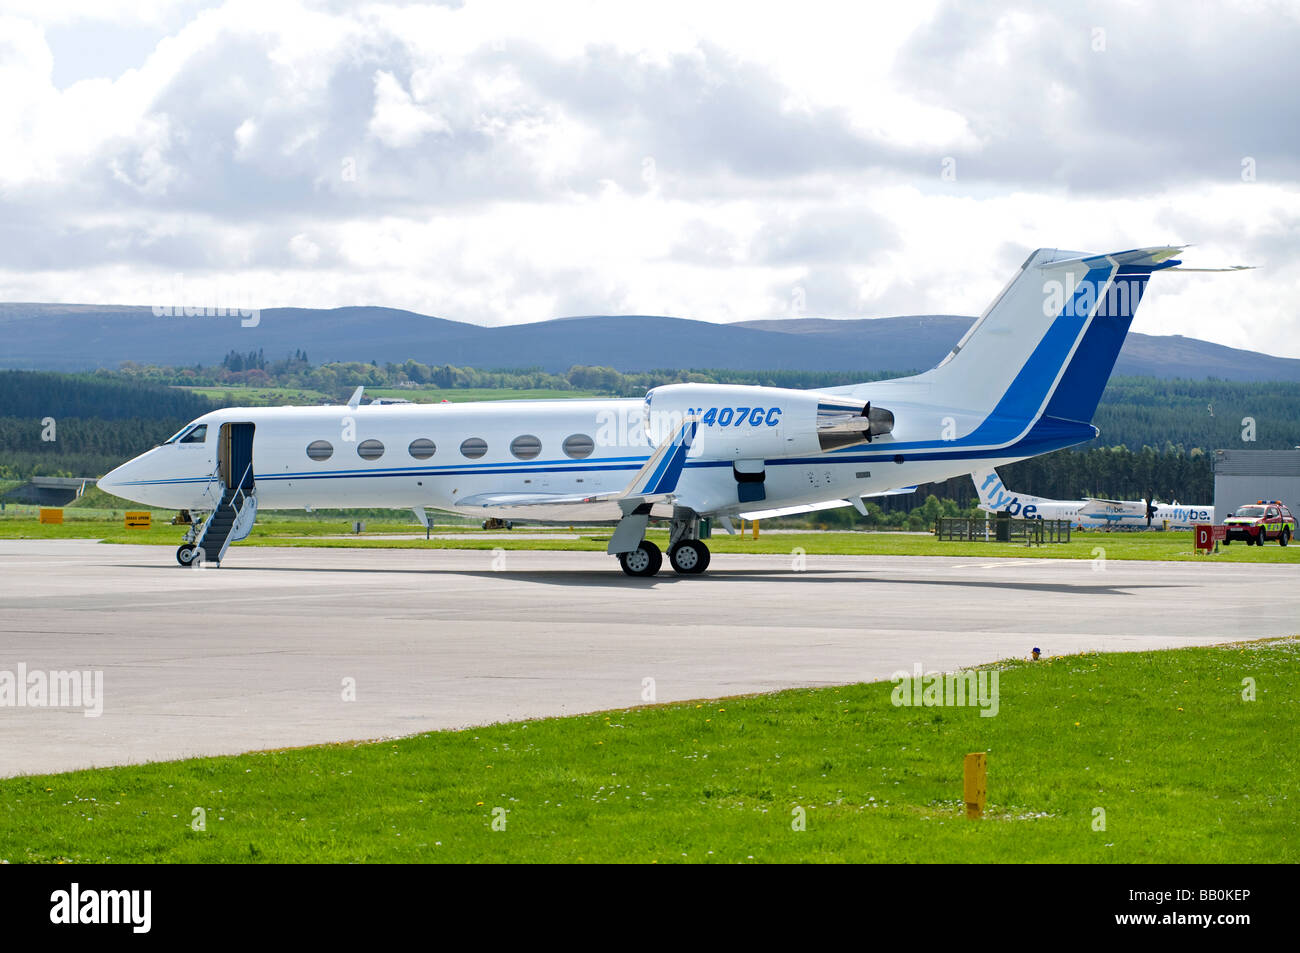 Gulfstream twin engine business jet at Inverness Dalcross Airport Scottish Highlands. - Stock Image